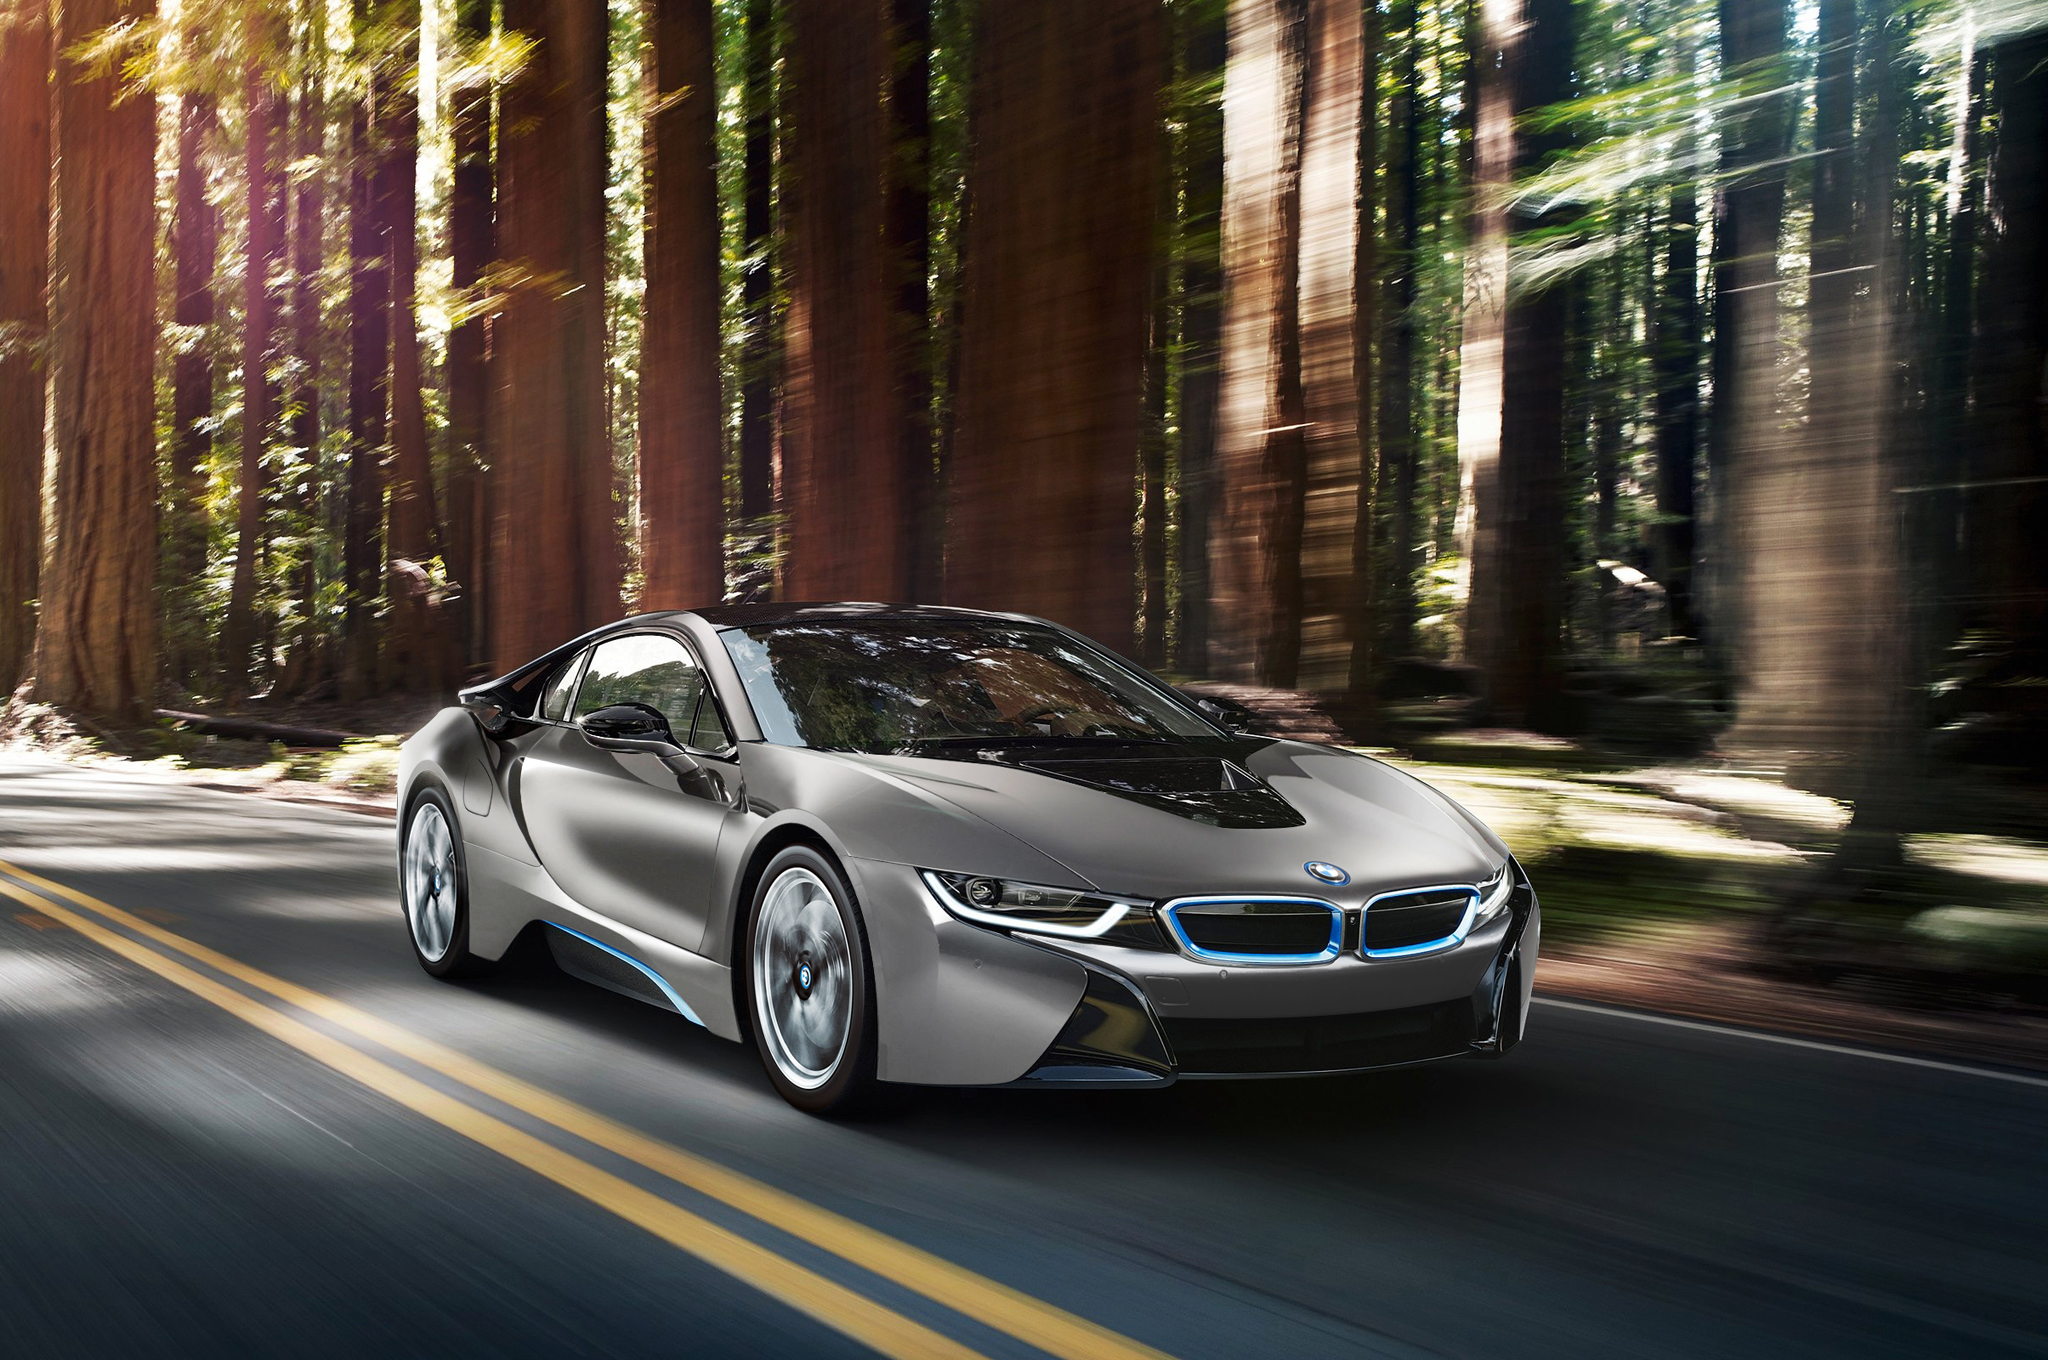 One Of A Kind 2014 Bmw I8 To Hit Auction Block At Pebble Beach